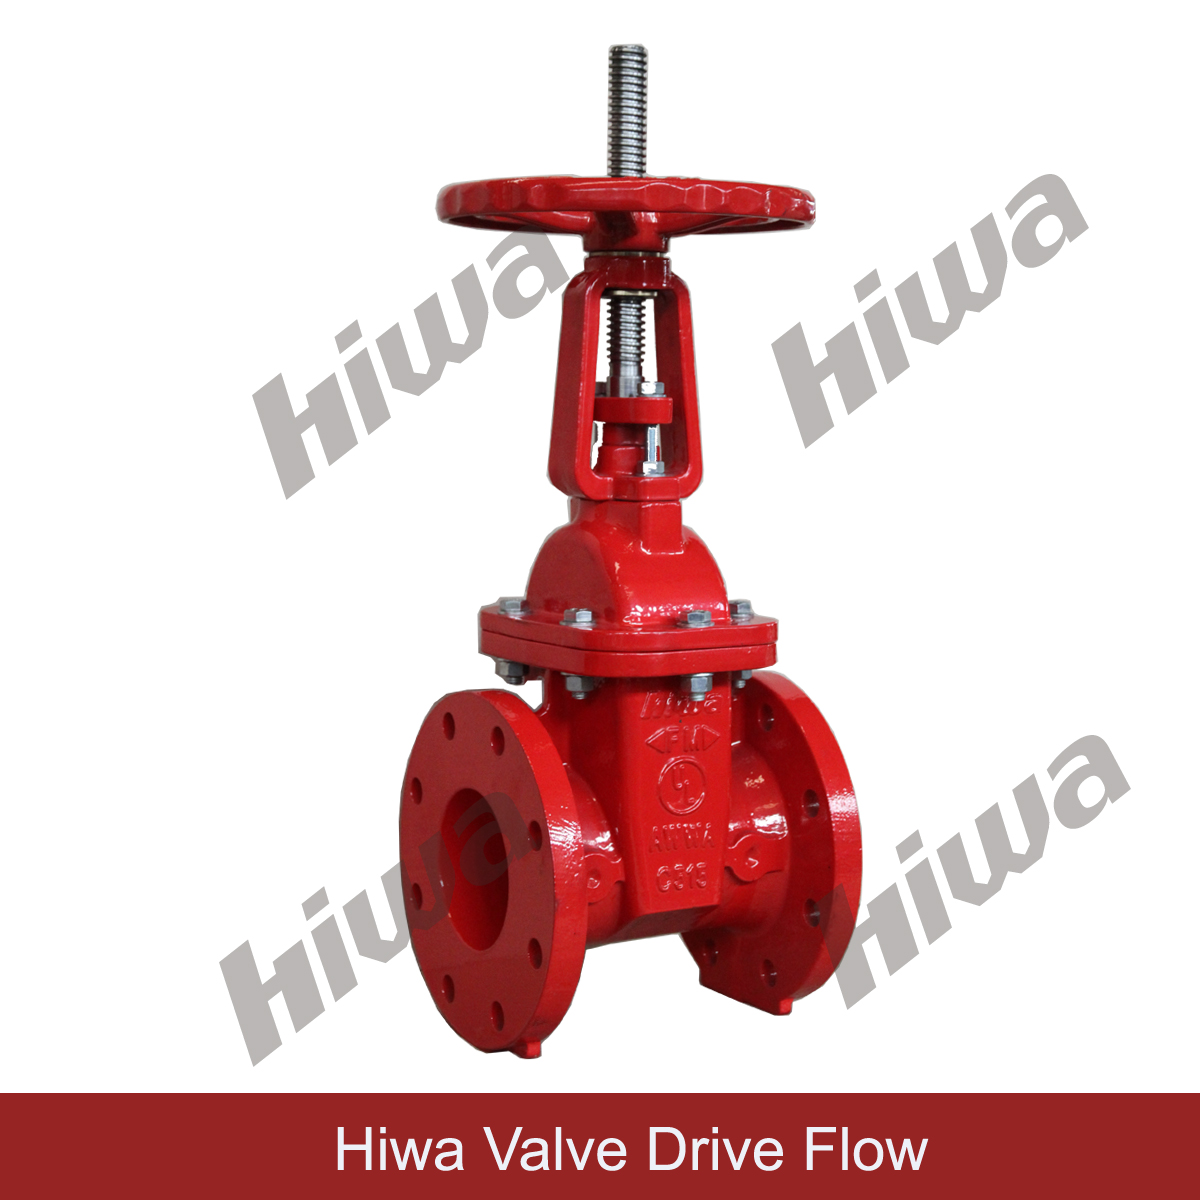 UL/FM OS&Y GATE VALVE, Flanged ends